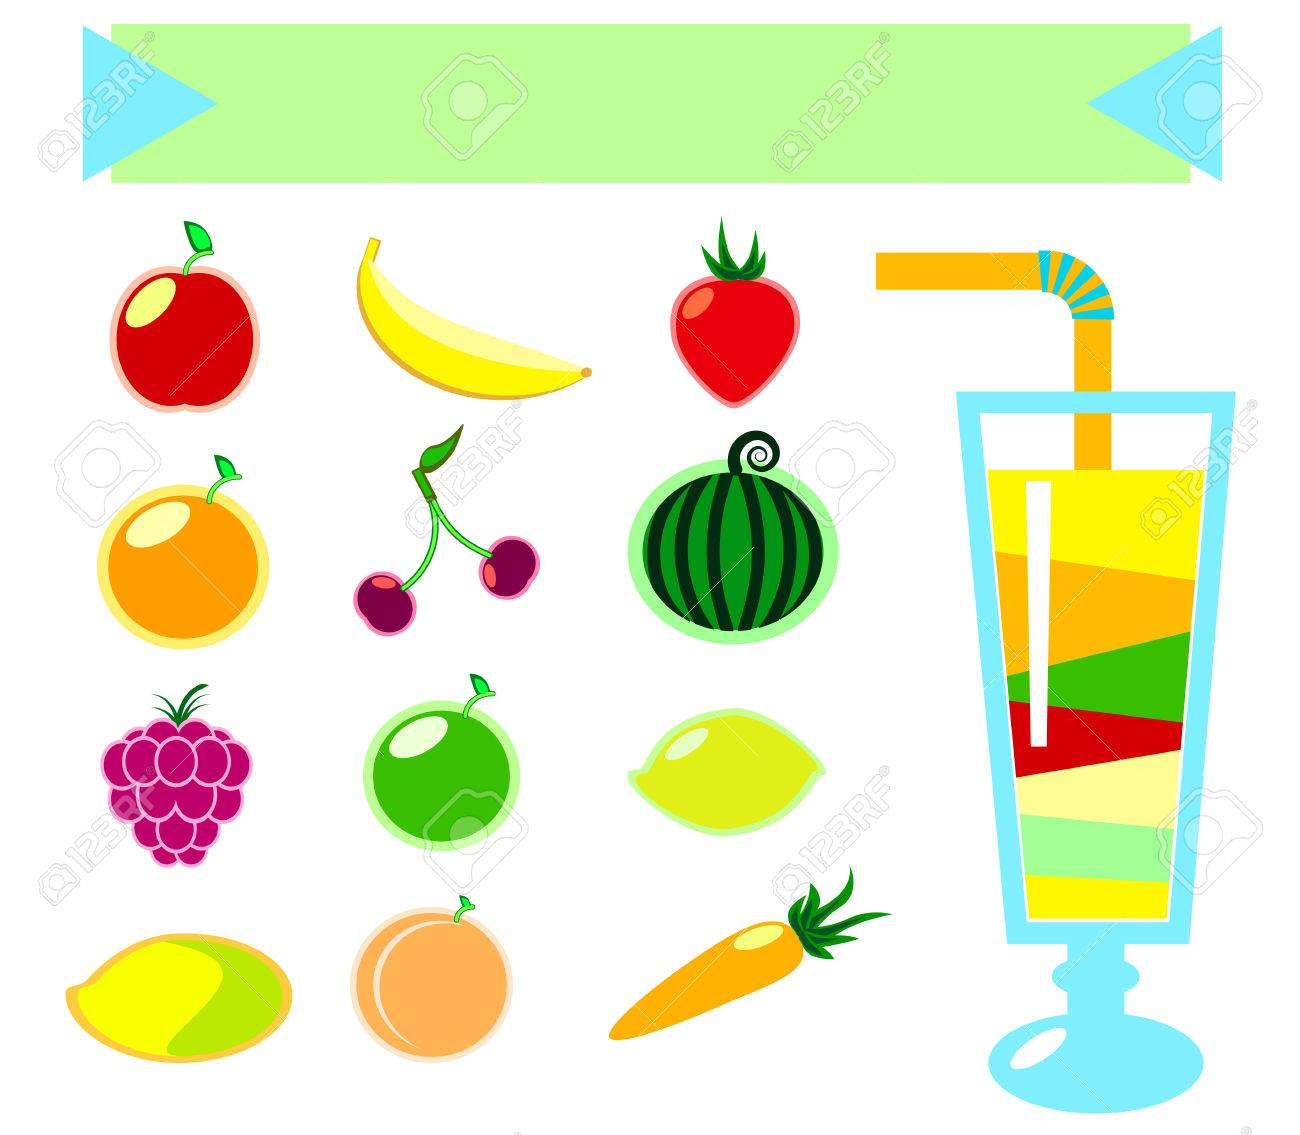 vector illustration of healthy drinks and fruits in flat style